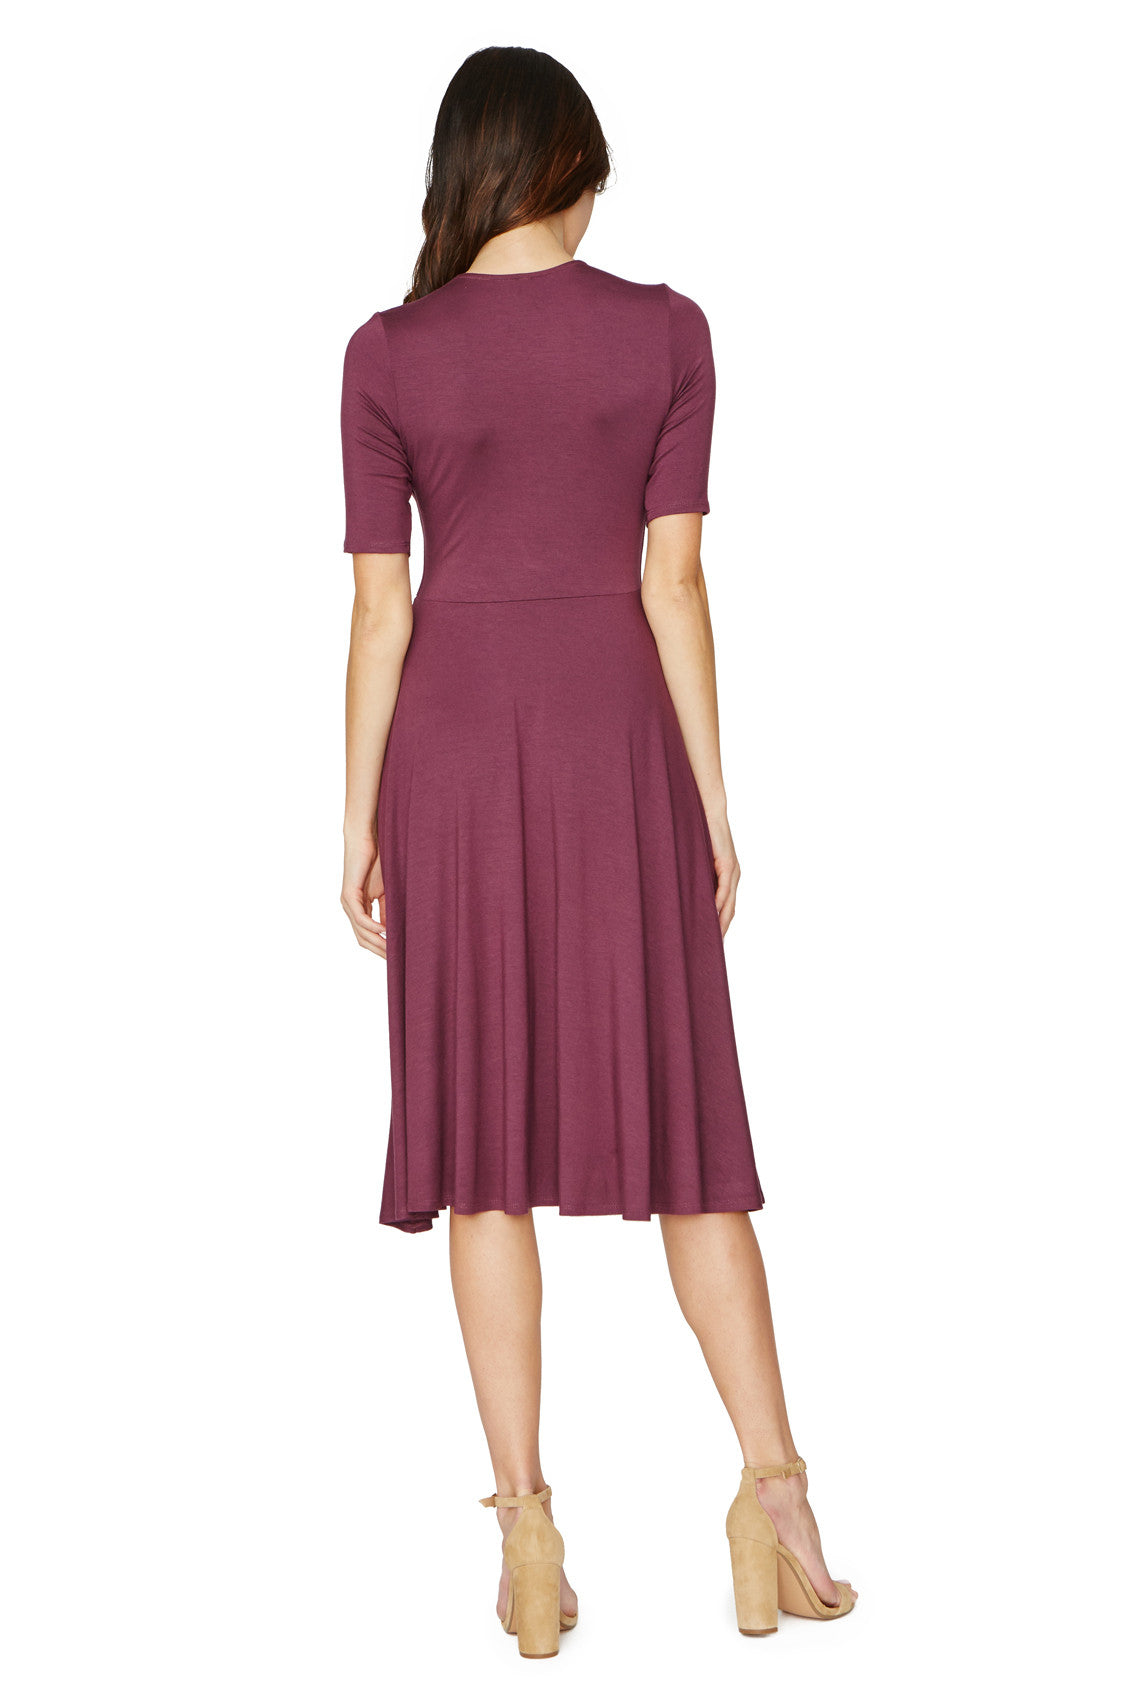 KIDADA DRESS - CURRANT